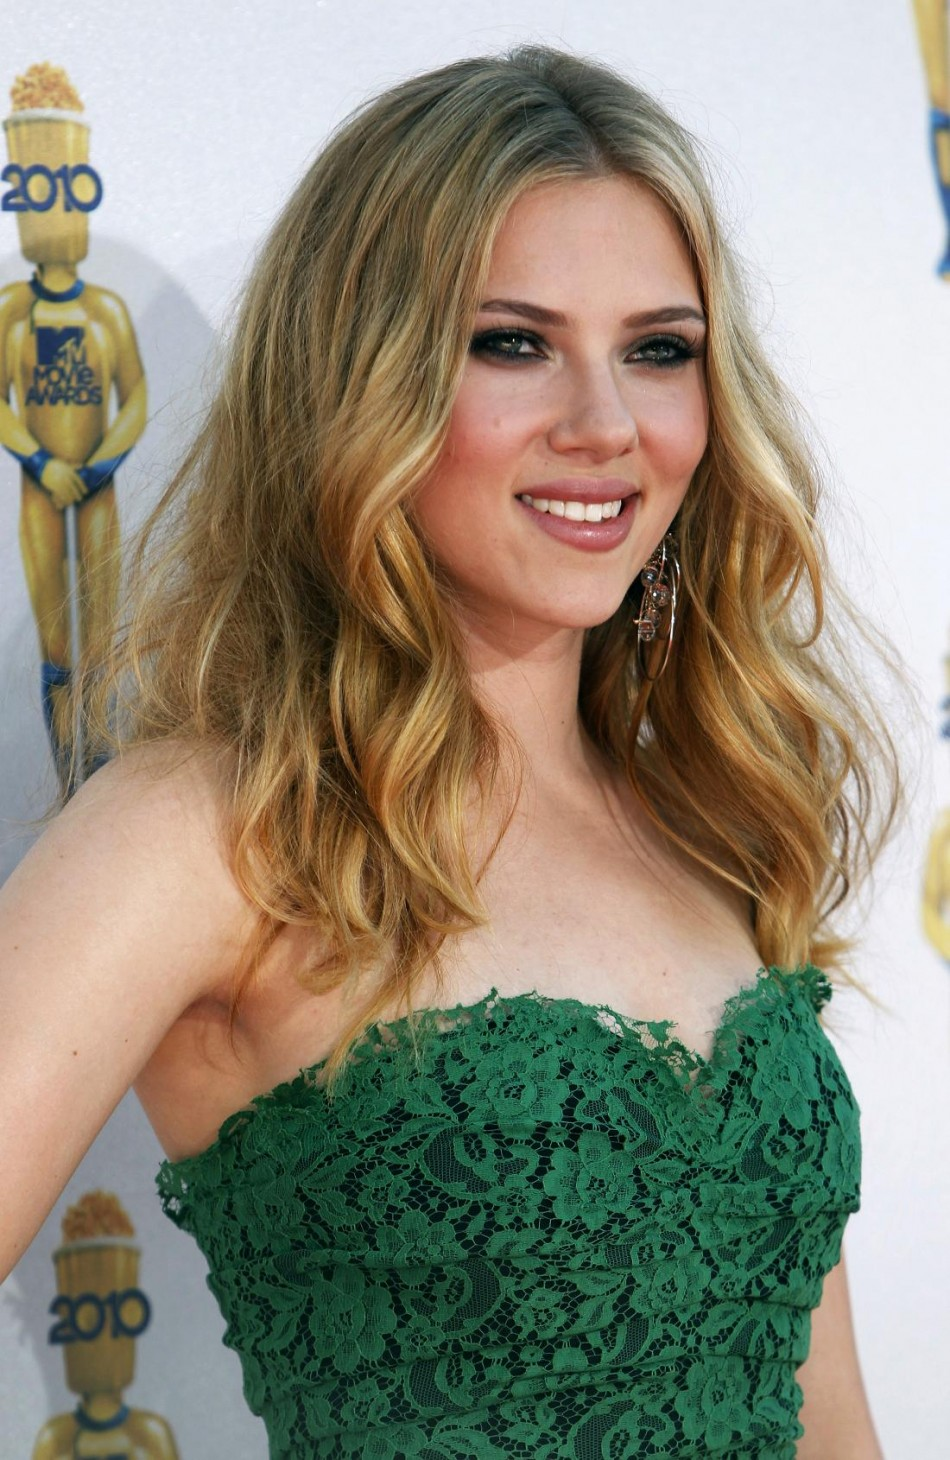 Actress Scarlett Johansson arrives at the 2010 MTV Movie Awards in Los Angeles.